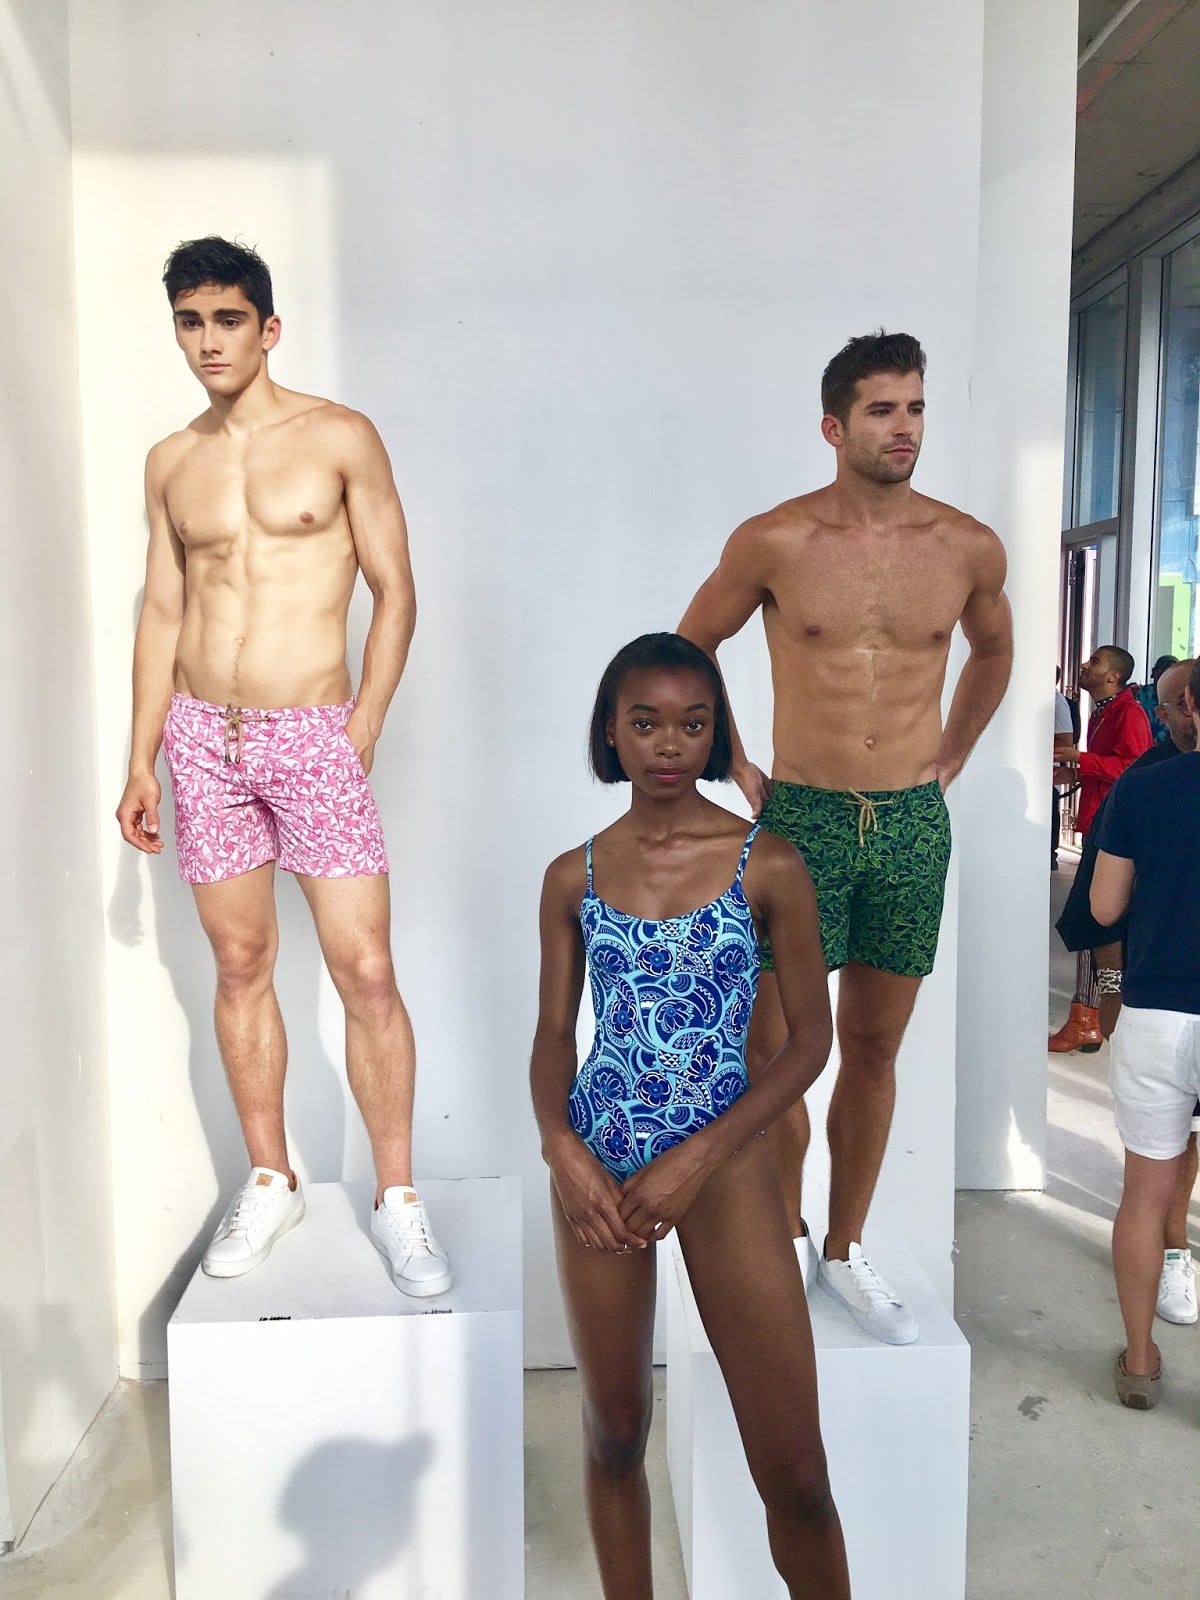 b999689579c3 More looks from the SS18 presentation below  Photo credit  Jonathan Valdez  of Orange Juice and Biscuits. Thorsun Men s   Women s Spring Summer 2018 ...